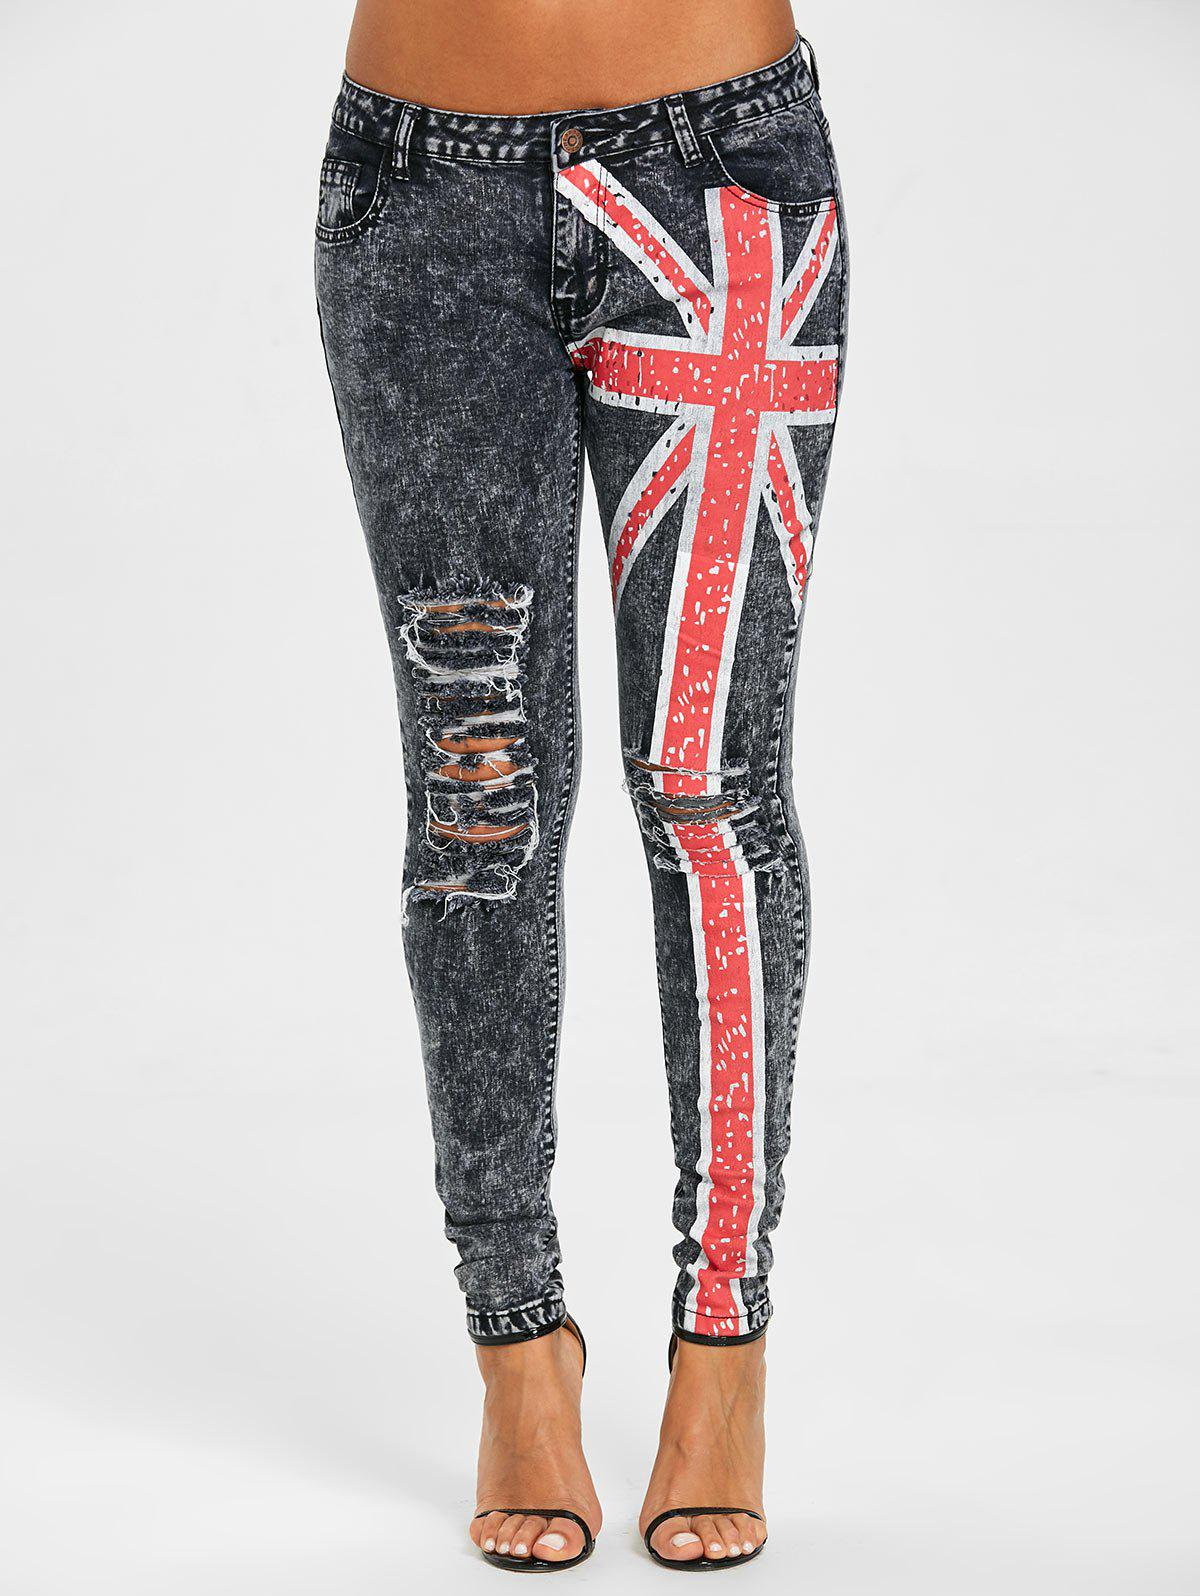 Union Flag Ripped Jeans - COLORMIX M